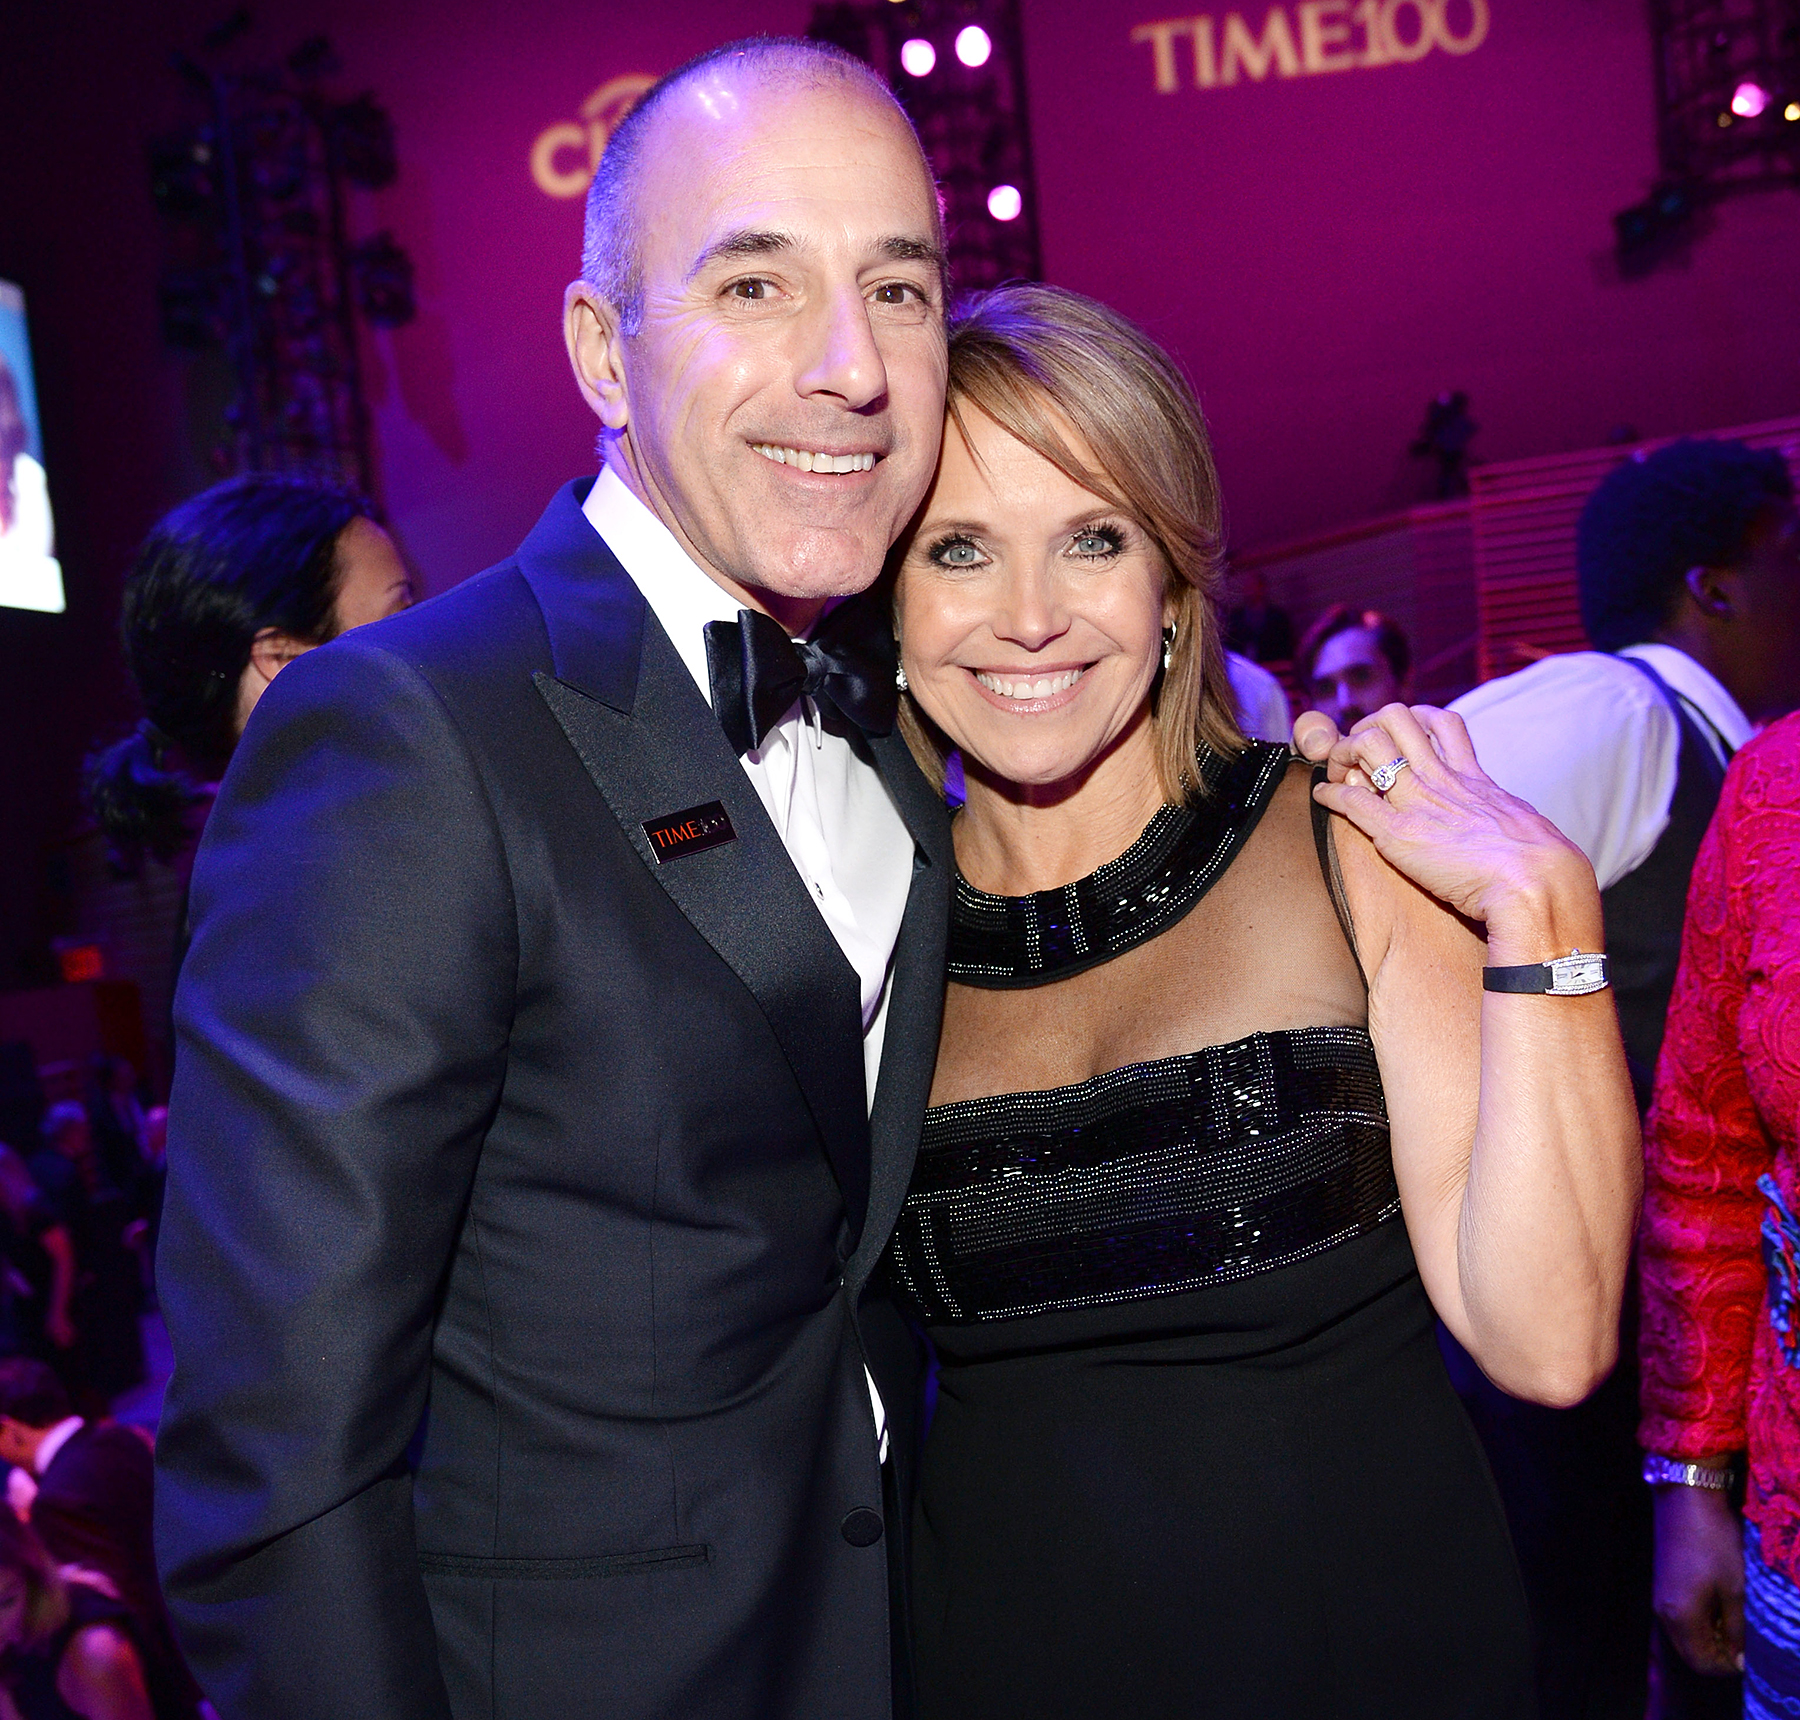 Katie Couric breaks silence on Matt Lauer